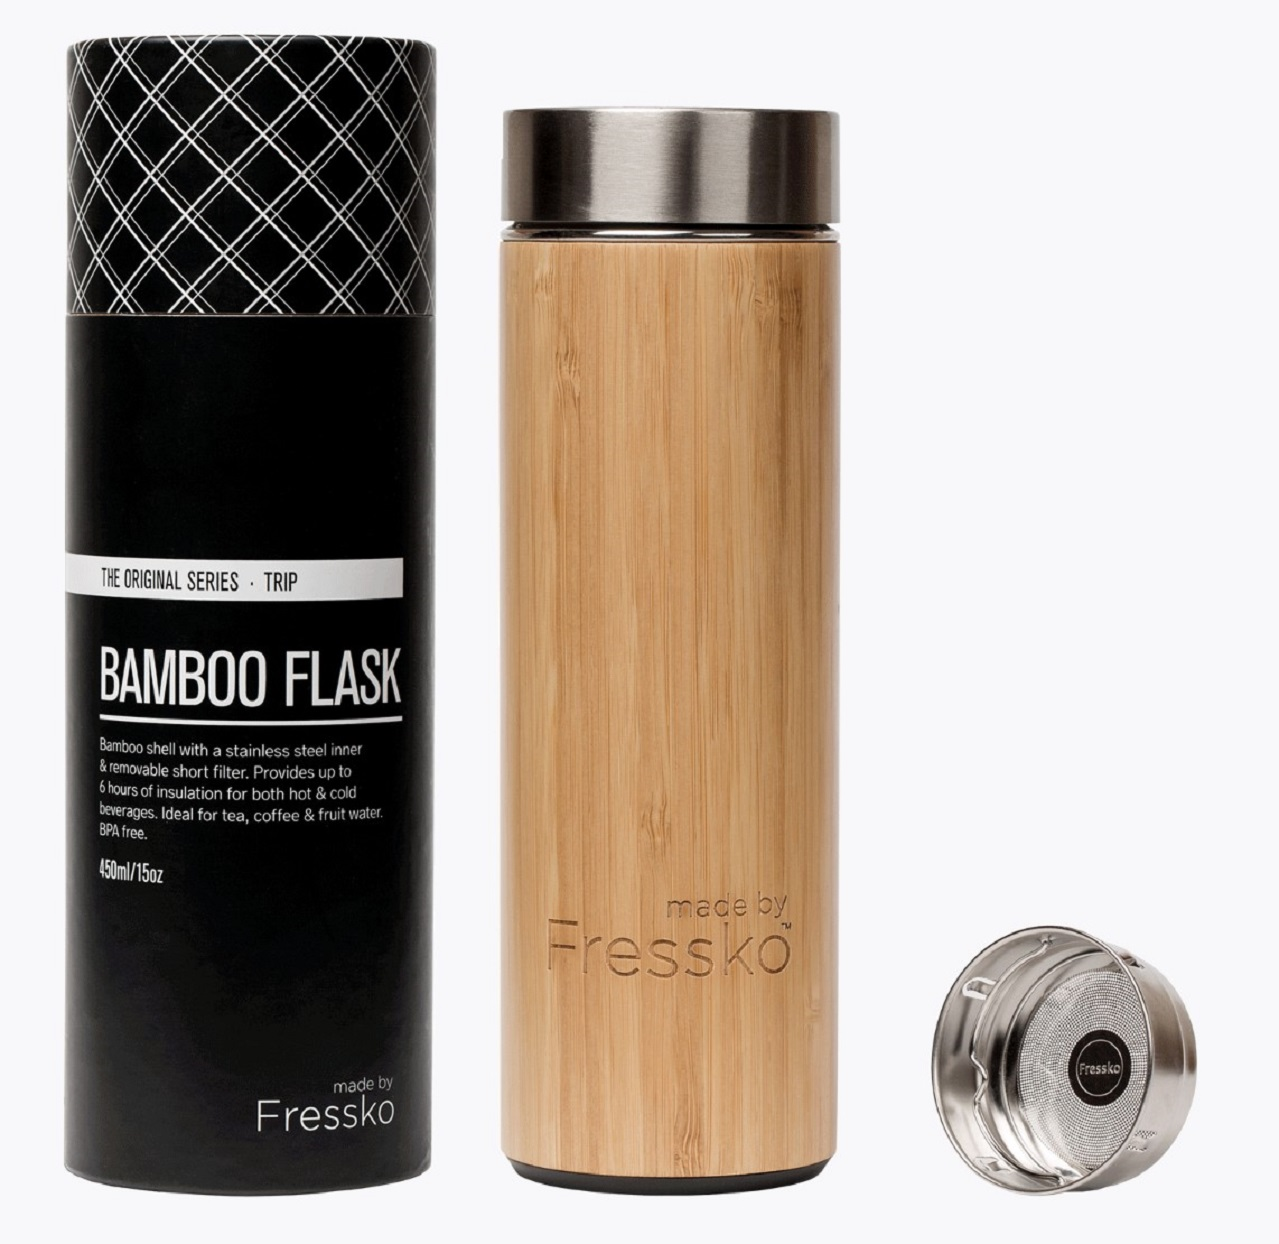 2019 holiday gift guide Made by Fressko 'Trip' Flask